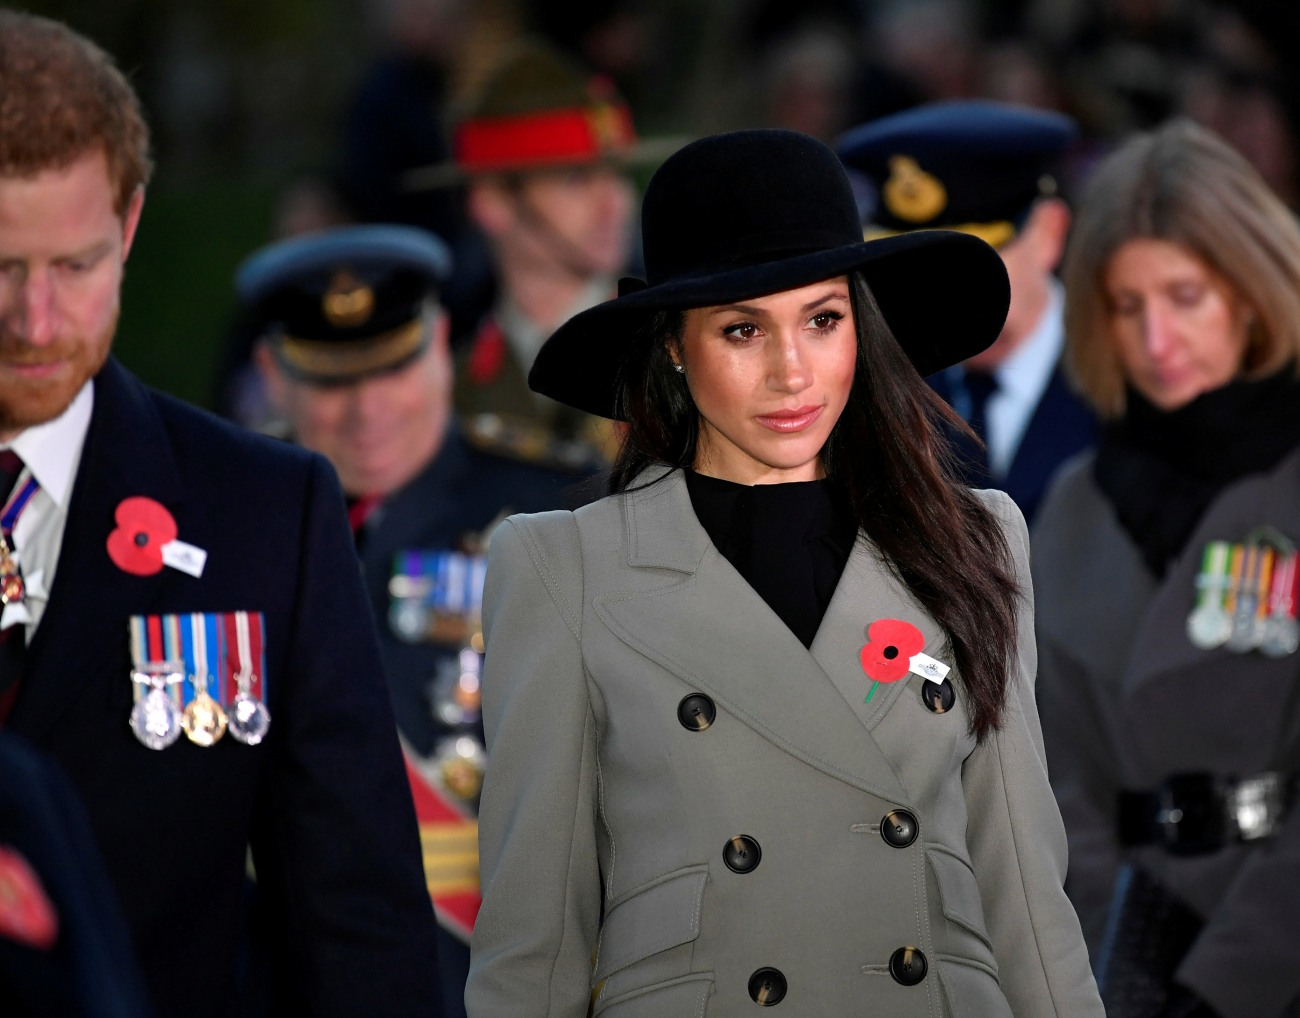 Britain's Prince Harry and his fiancee Meghan Markle commemorate Anzac Day in London